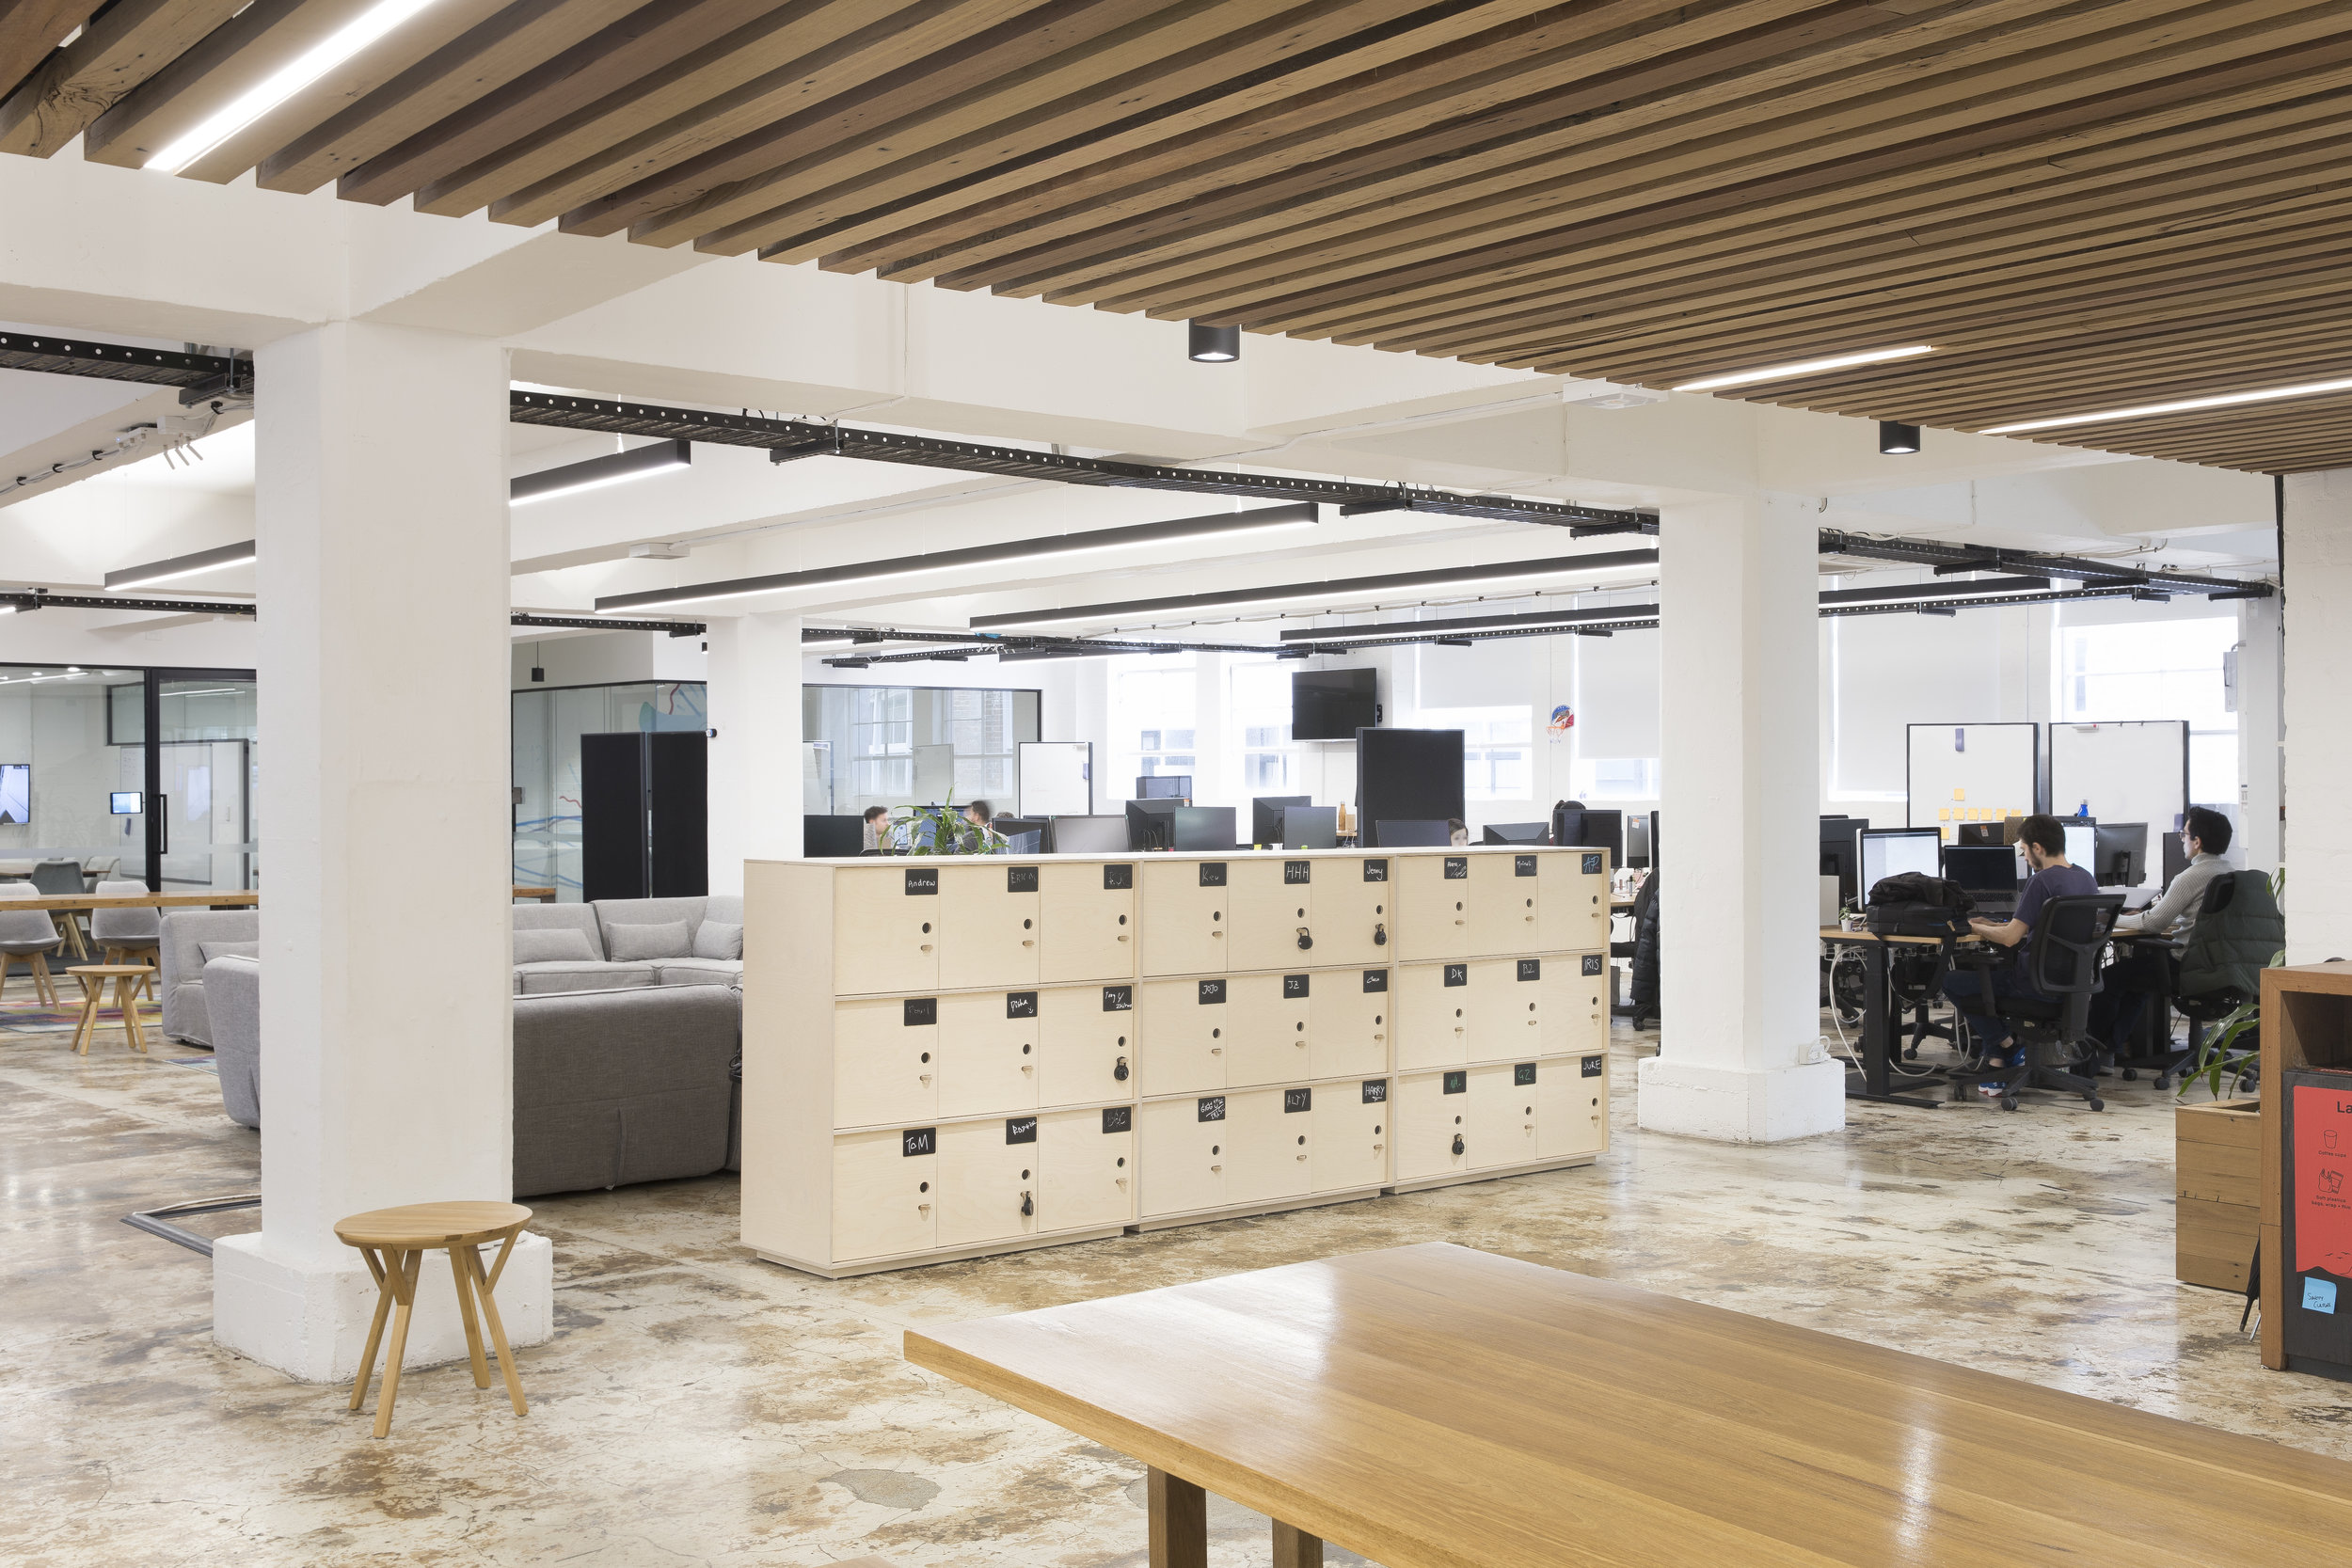 SoWatt-The-Bold-Collective-Safety-Culture-Plywood-Lockers-SamKirby-17.jpg